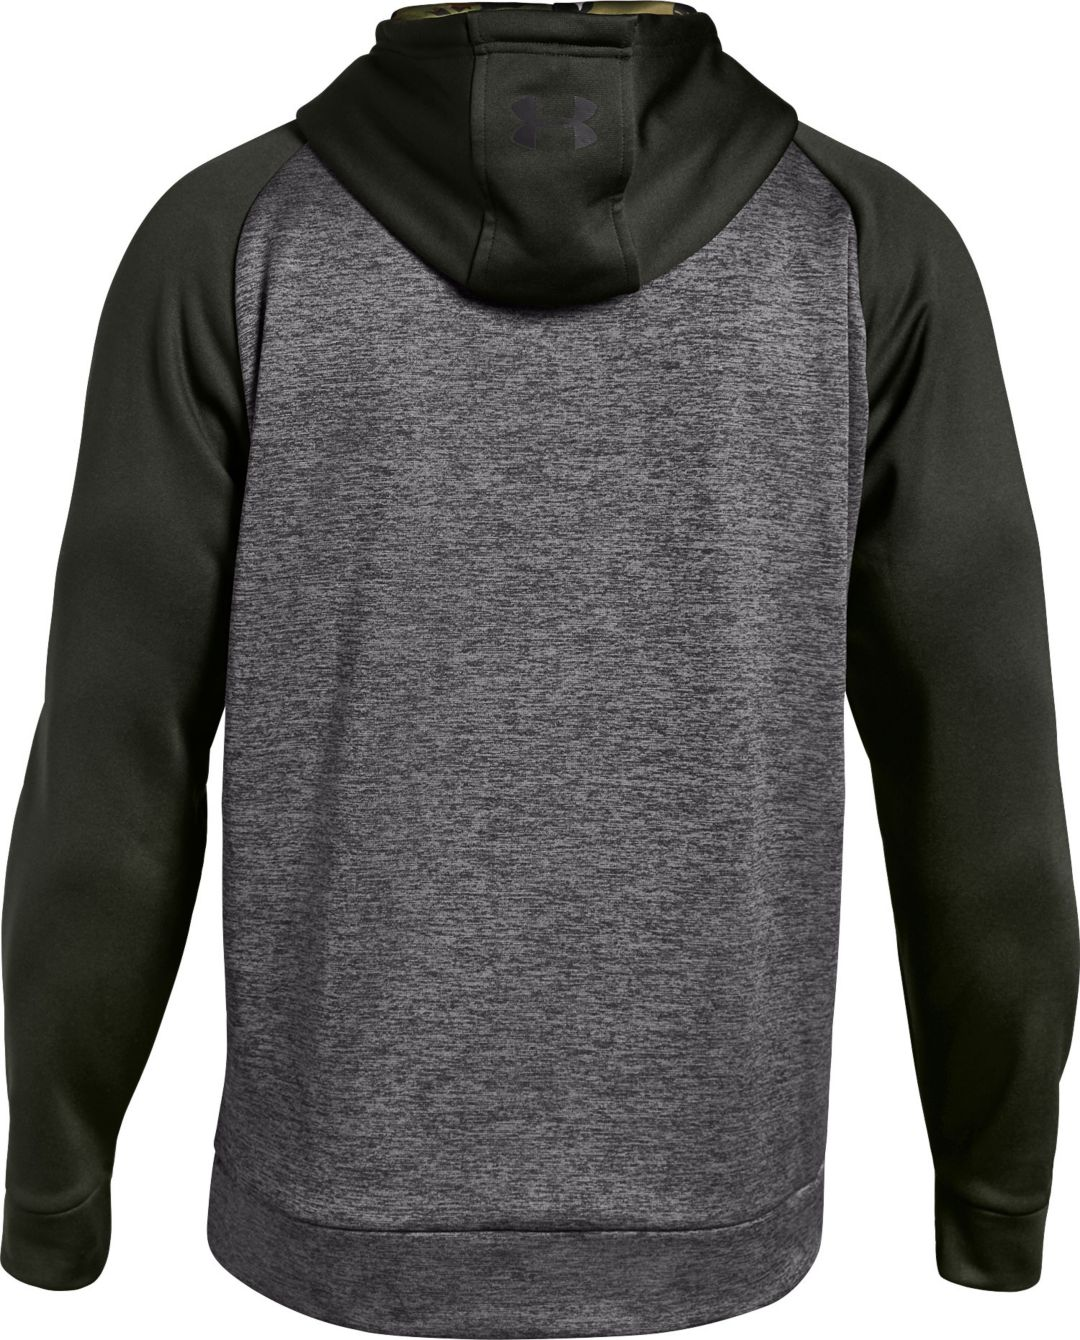 99f48df56 Under Armour Men's Armour Fleece Stacked Hoodie | DICK'S Sporting Goods